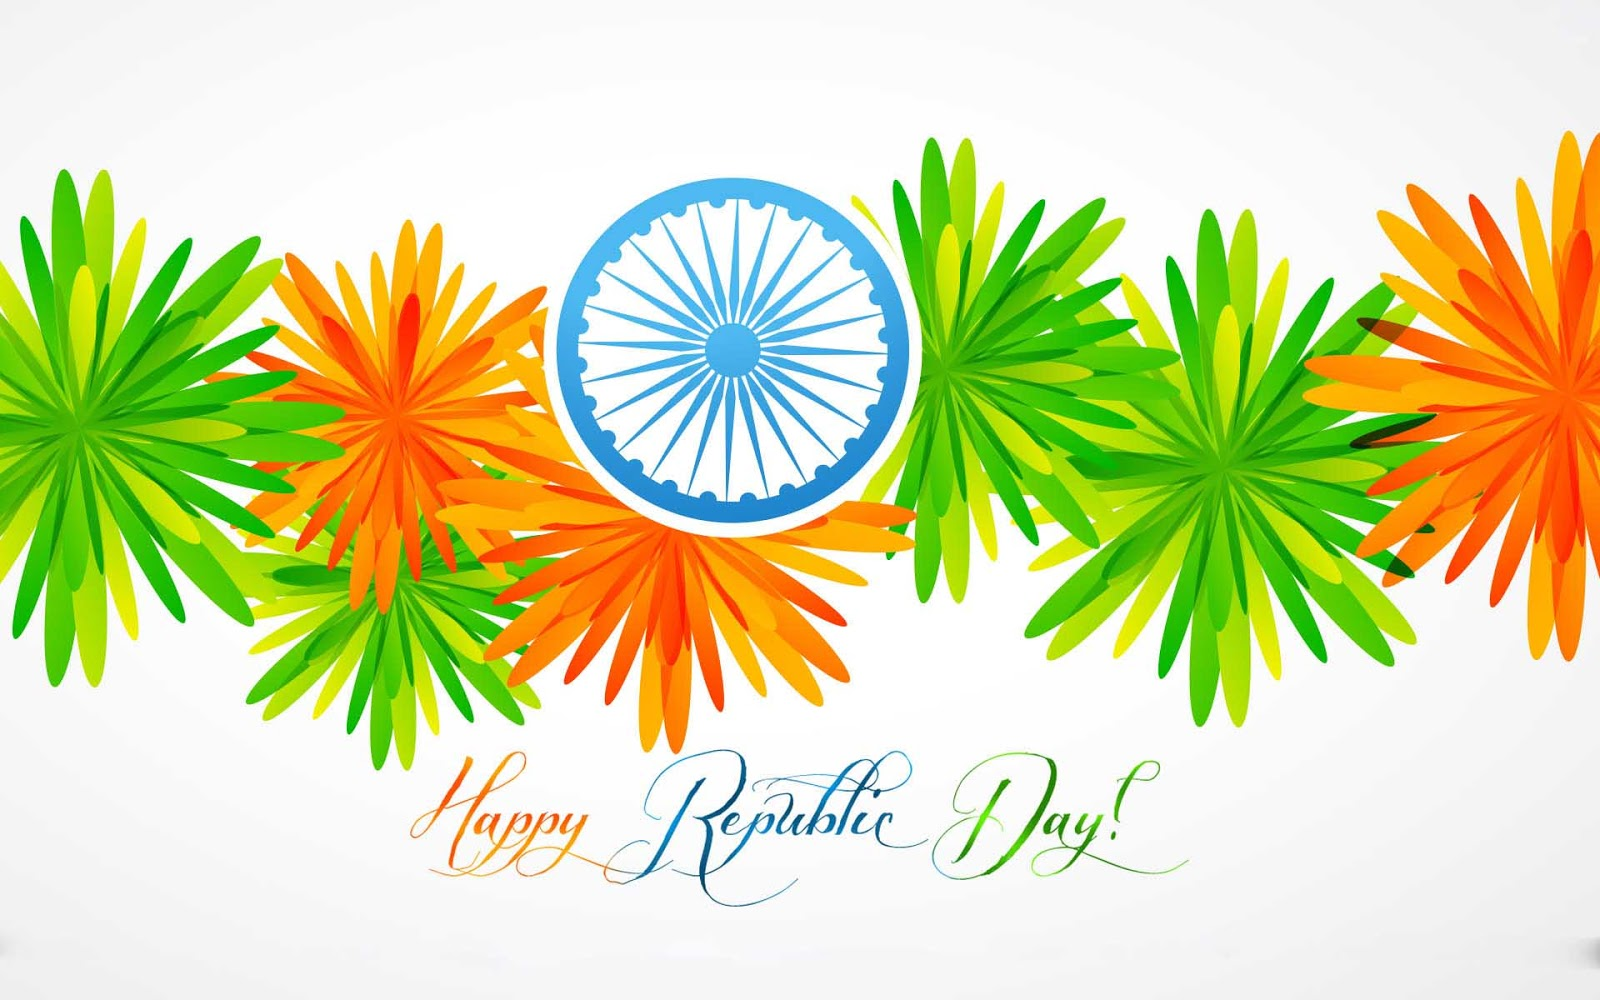 Republic Day Images 2021 Free Download - Happy Republic ...